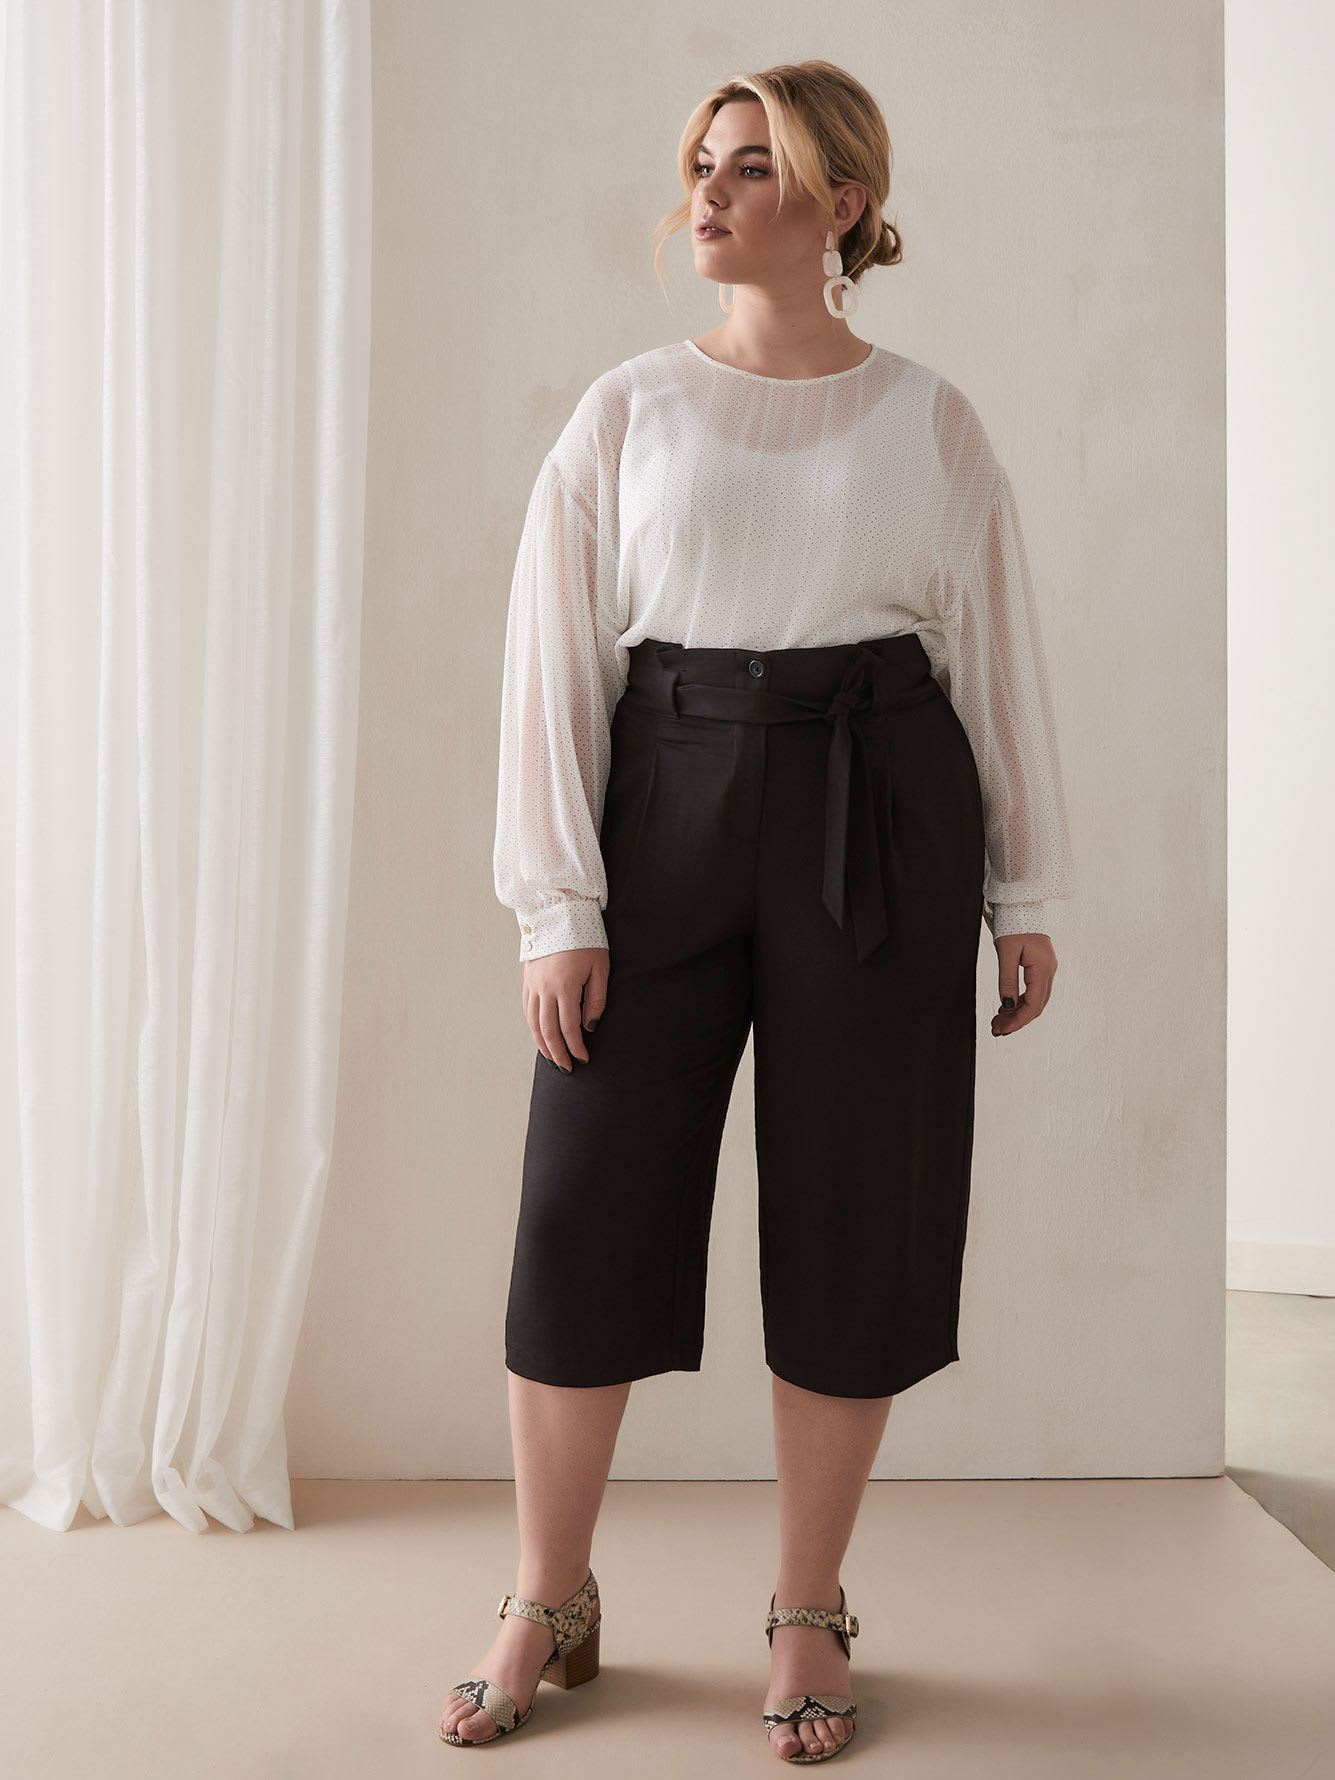 Bat Sleeve Cropped Blouse